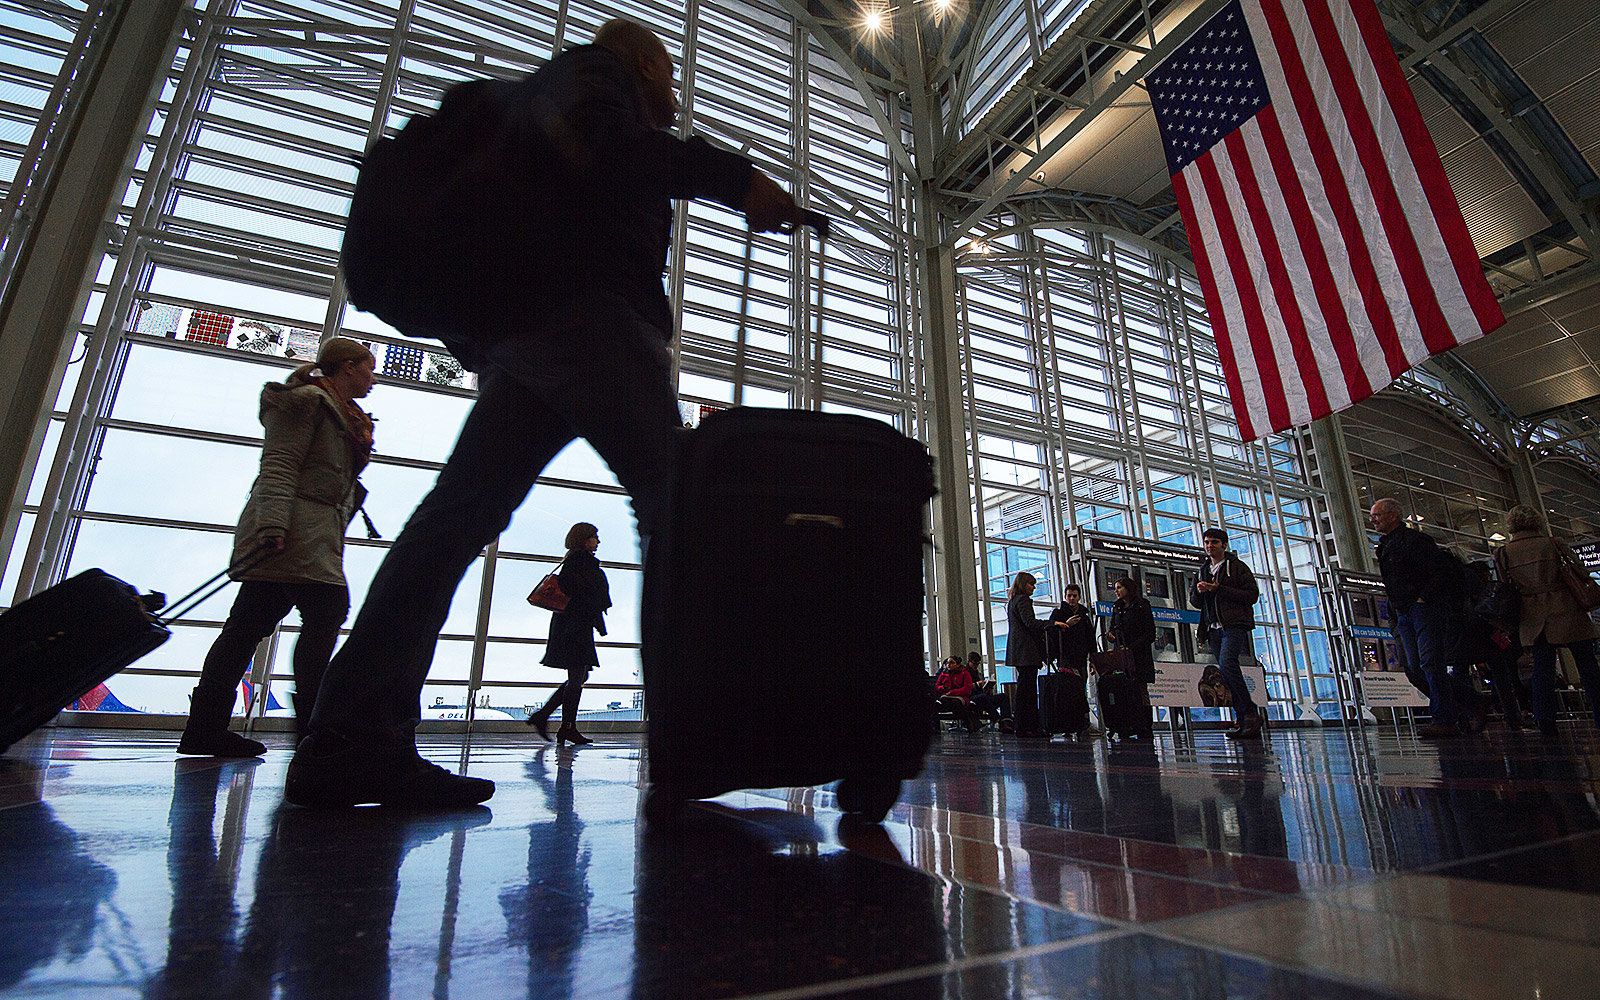 Americans are traveling more